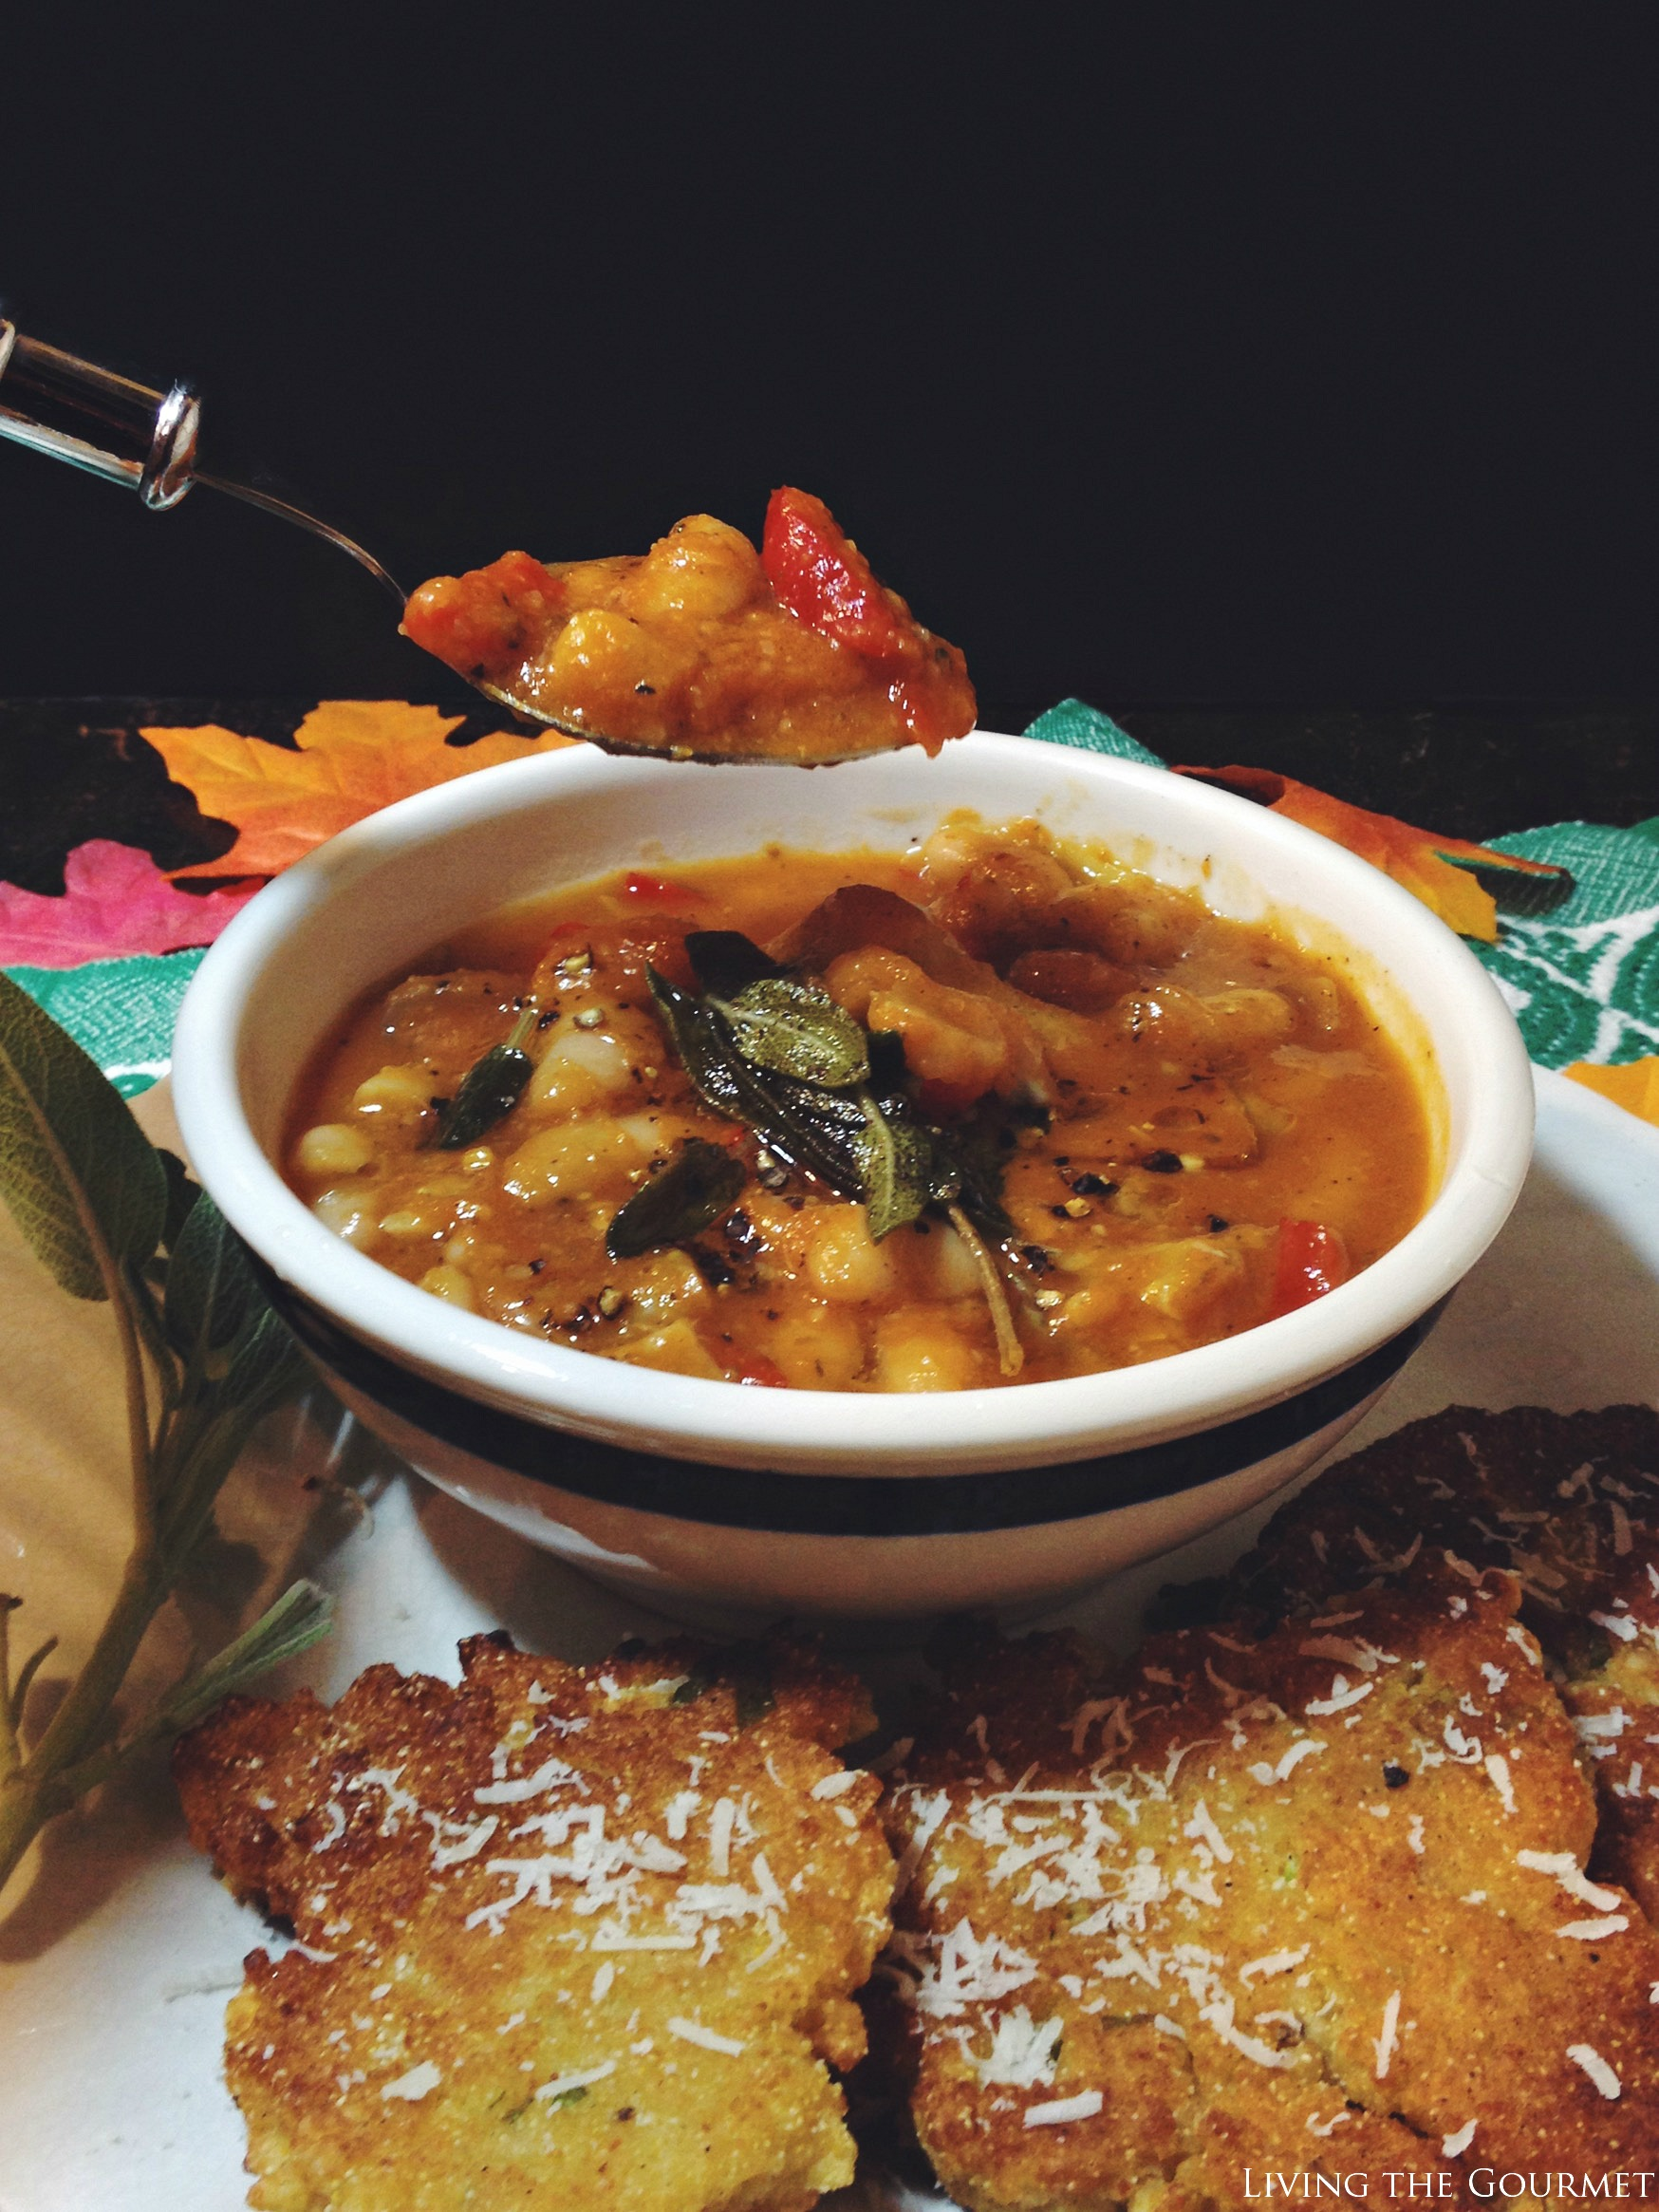 Living the Gourmet: Spicy Pumpkin Soup with Polenta Cakes